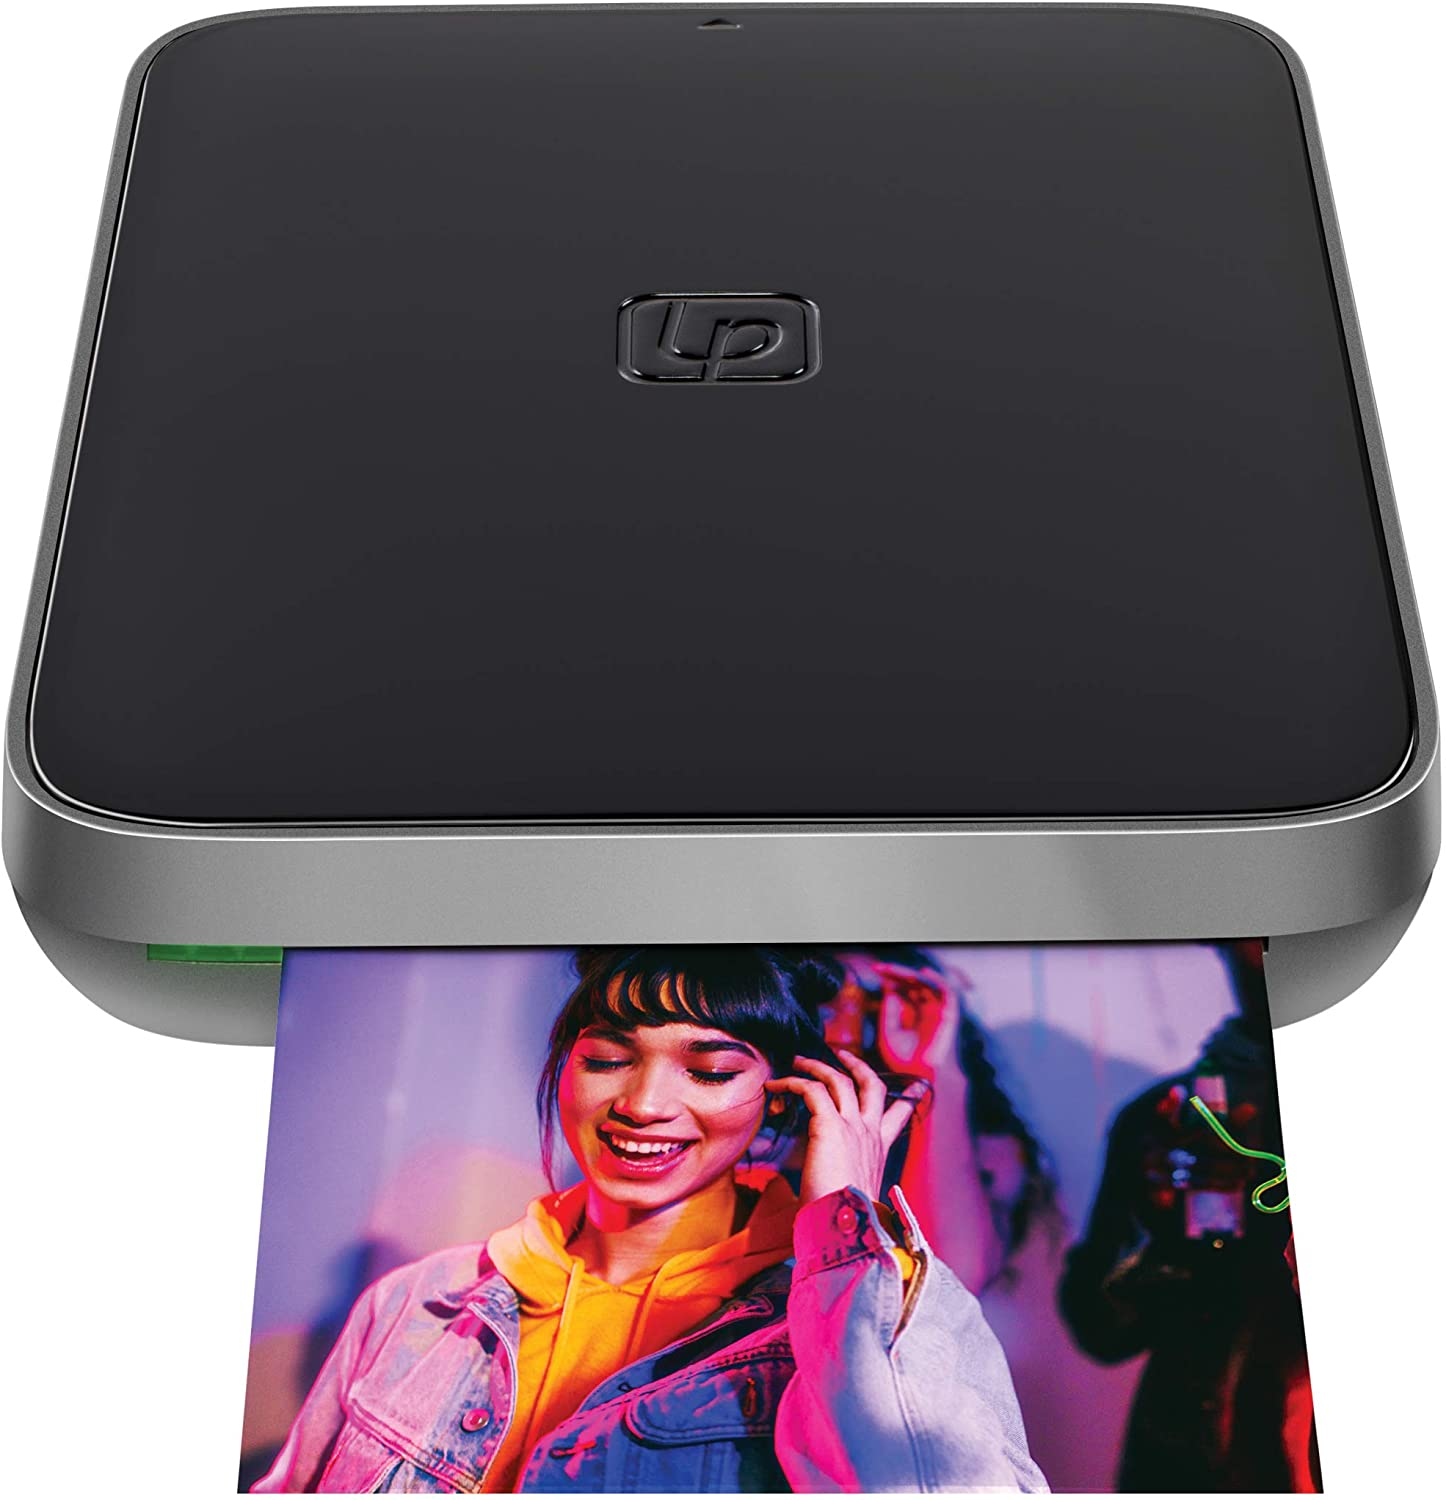 Lifeprint 3x4.5 Portable Photo AND Video Printer for iPhone and Android. Make Your Photos Come To Life w/ Augmented Reality - Black